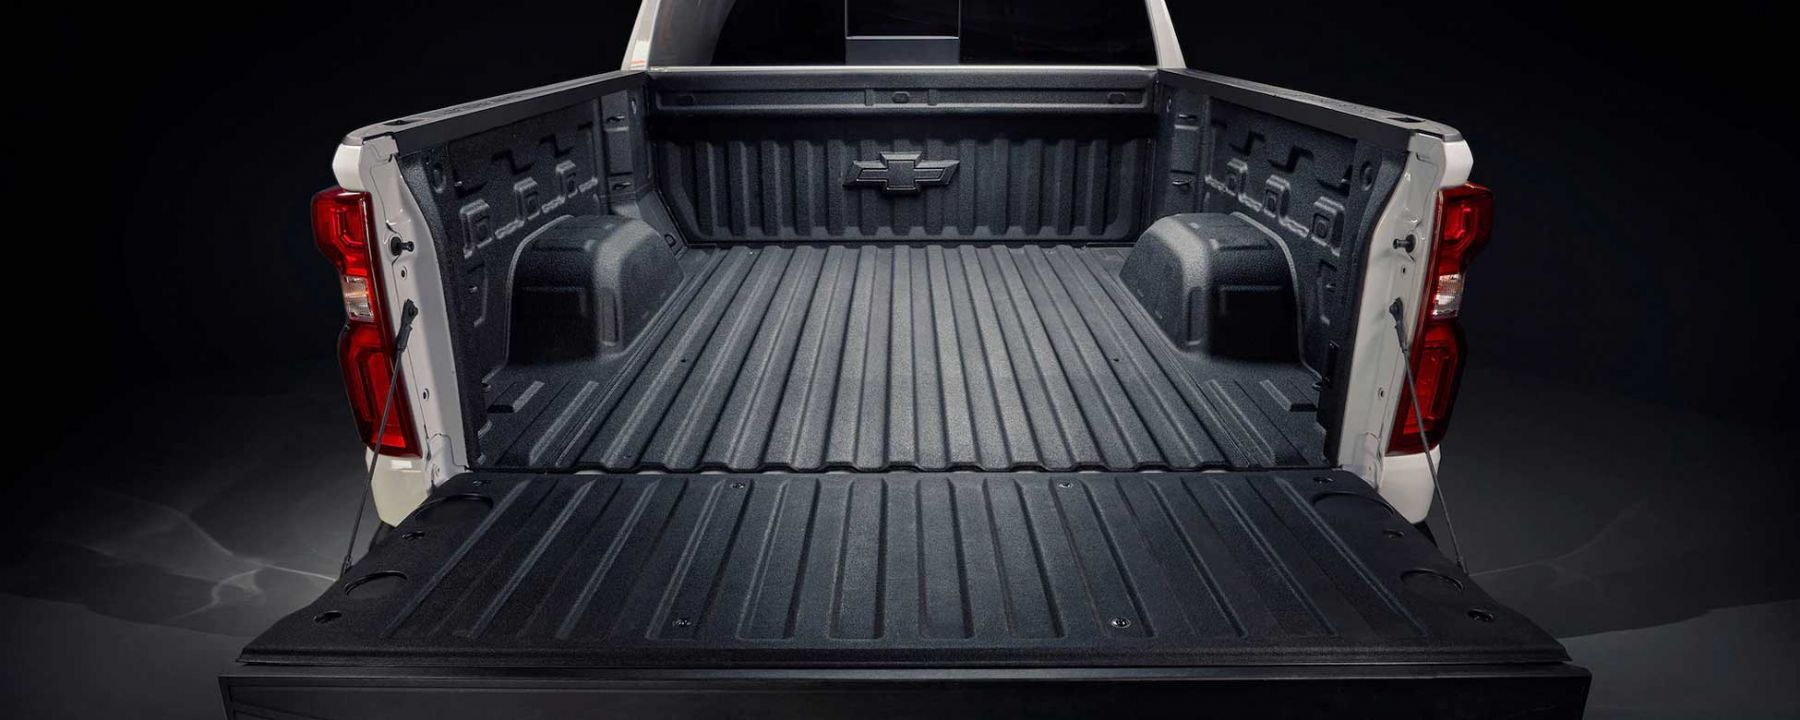 THE MOST FUNCTIONAL BED OF ANY PICKUP